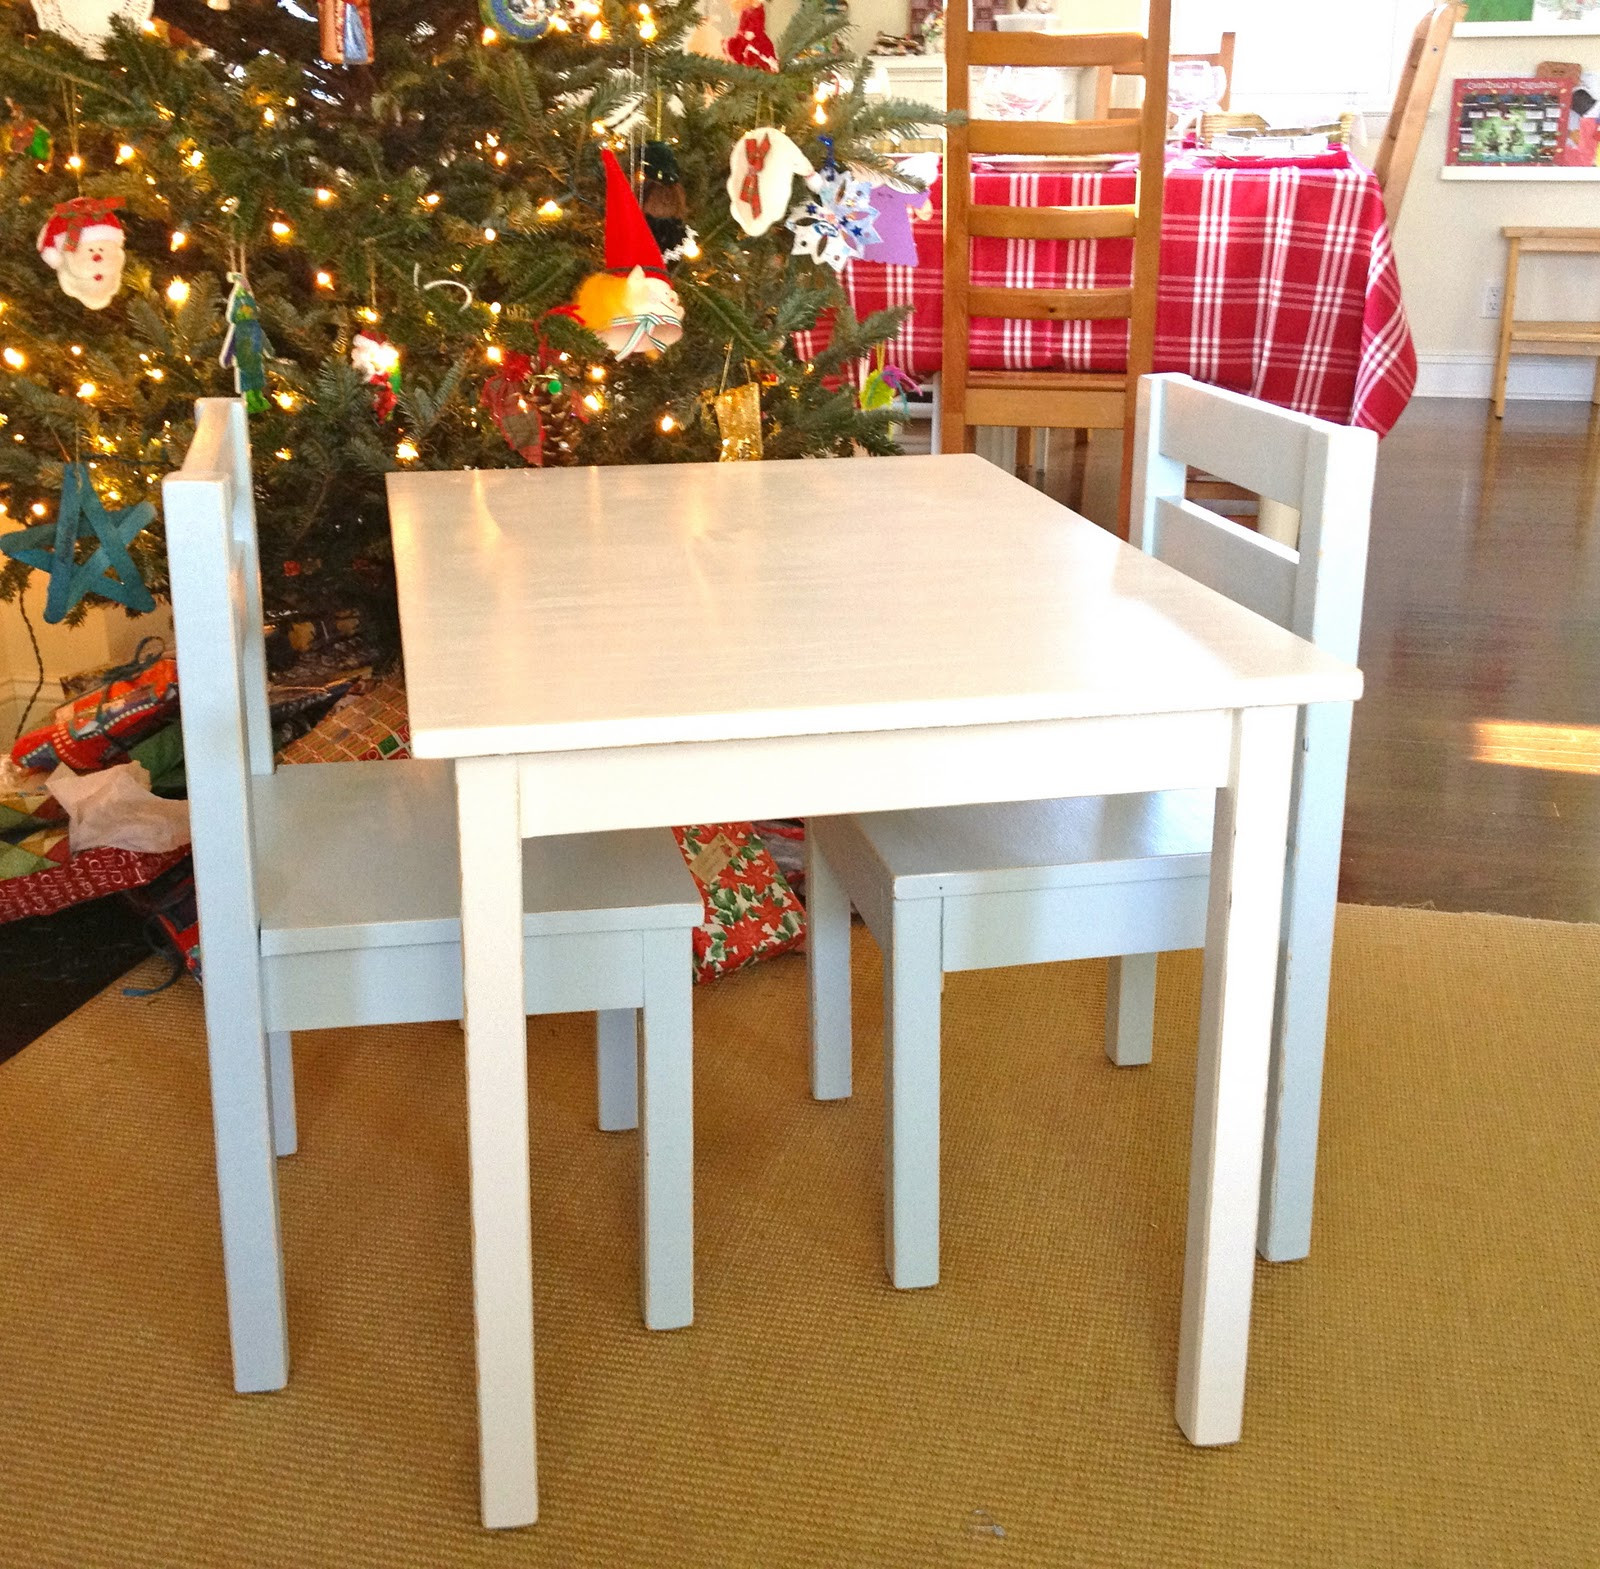 Best ideas about DIY Kids Table . Save or Pin That s My Letter DIY Kids Table with Chairs Now.